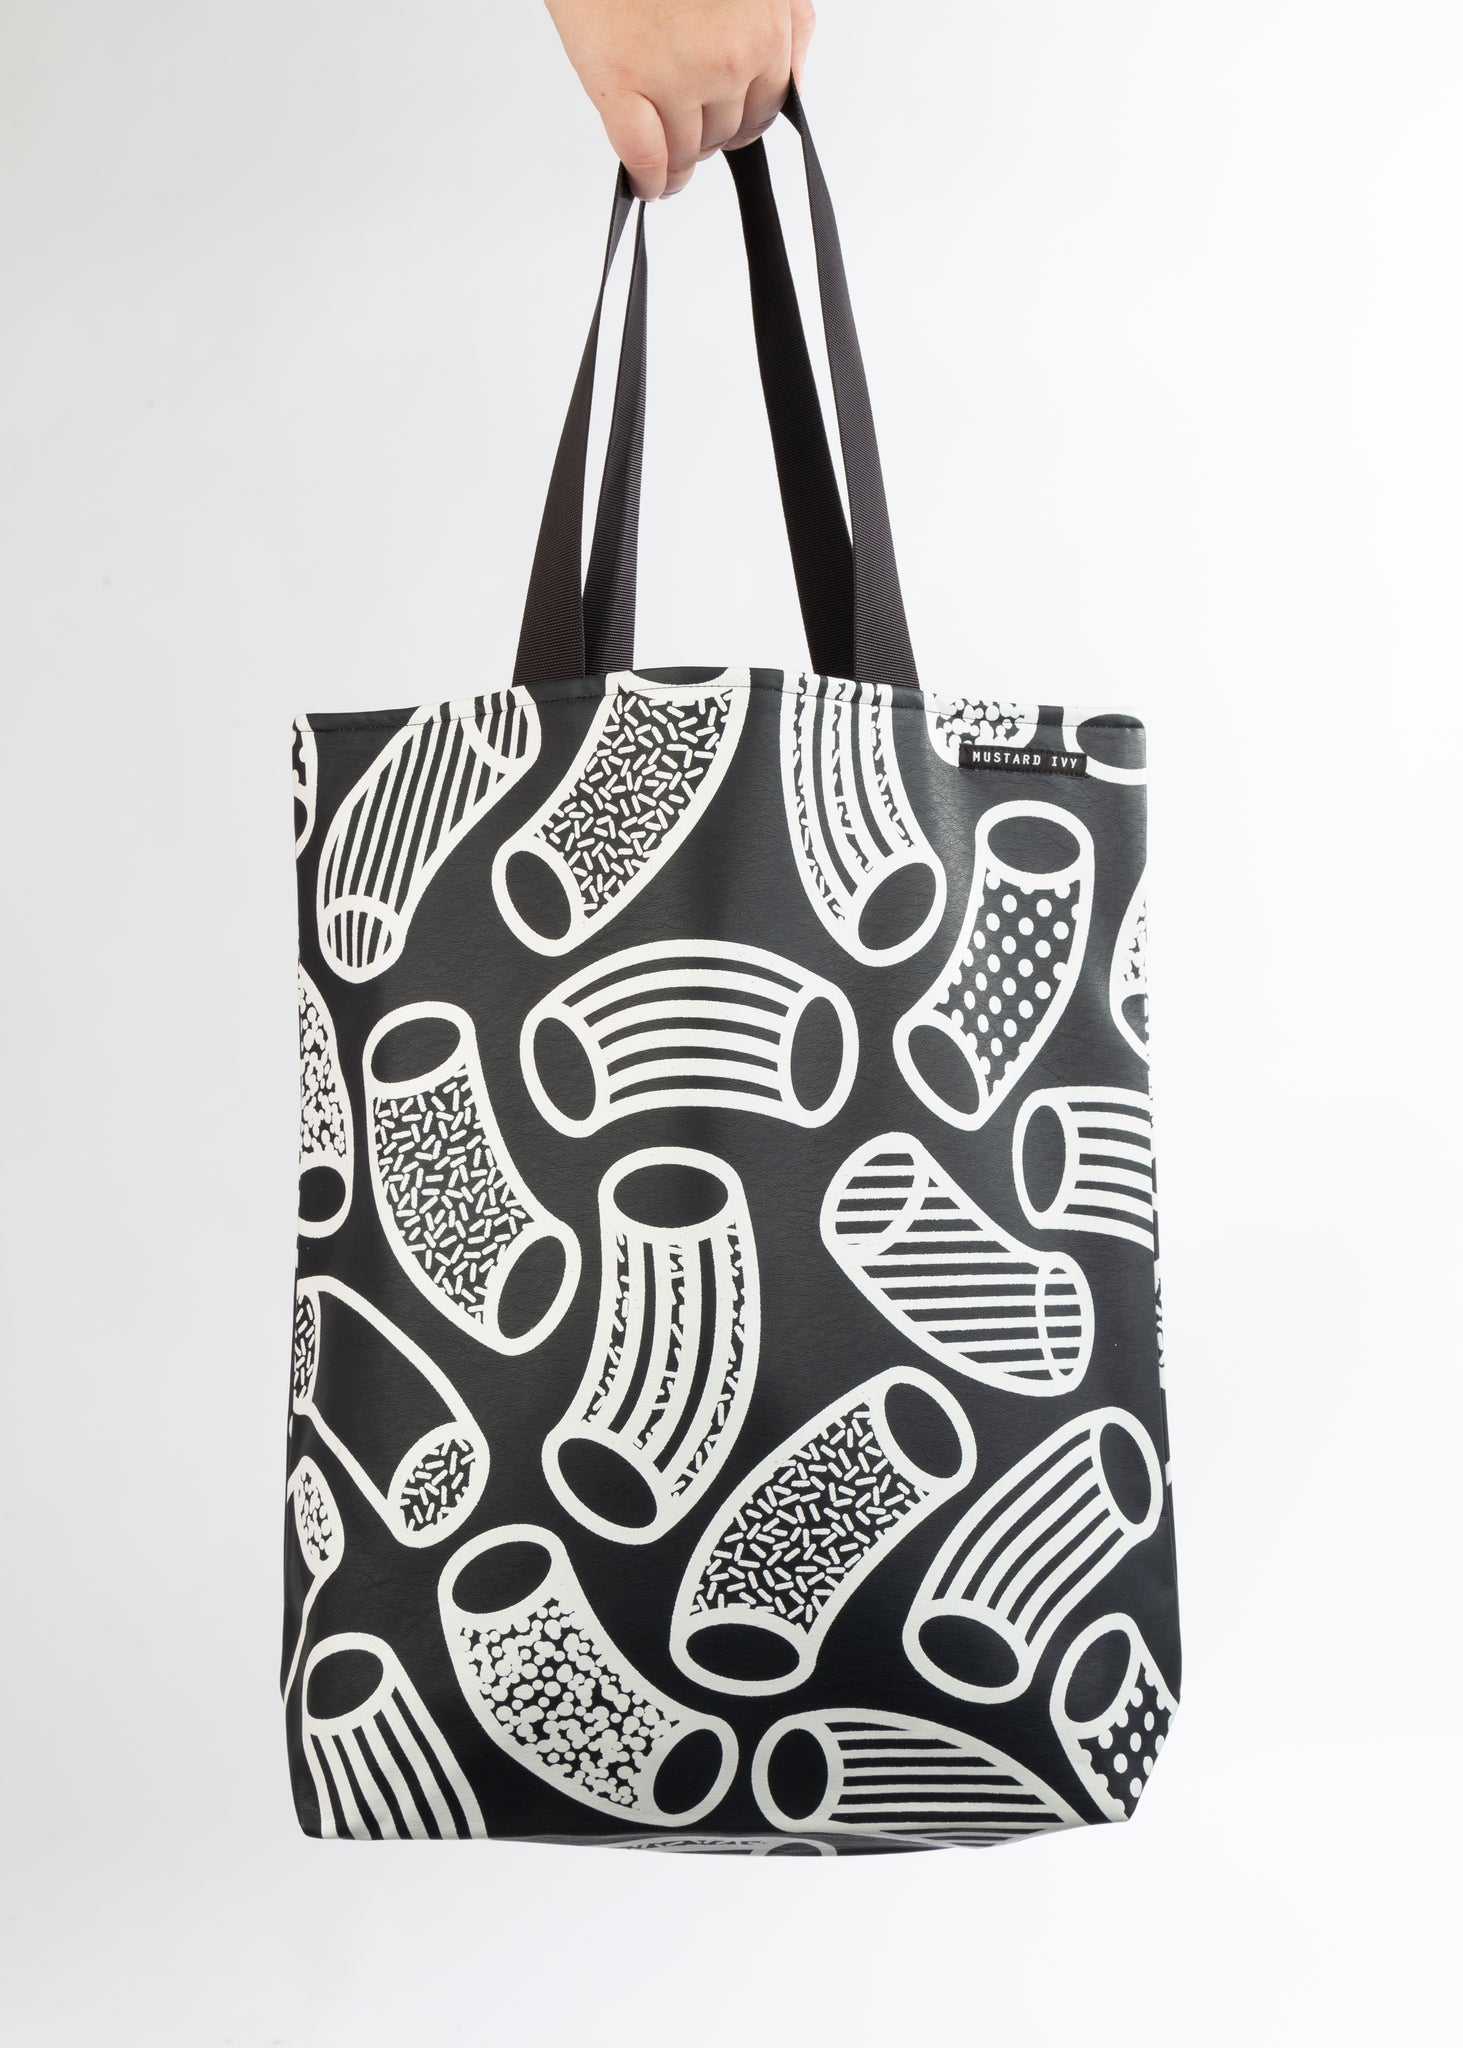 RILEY Macaroni Print Long Handle Navy and White Tote in Vegan Leather